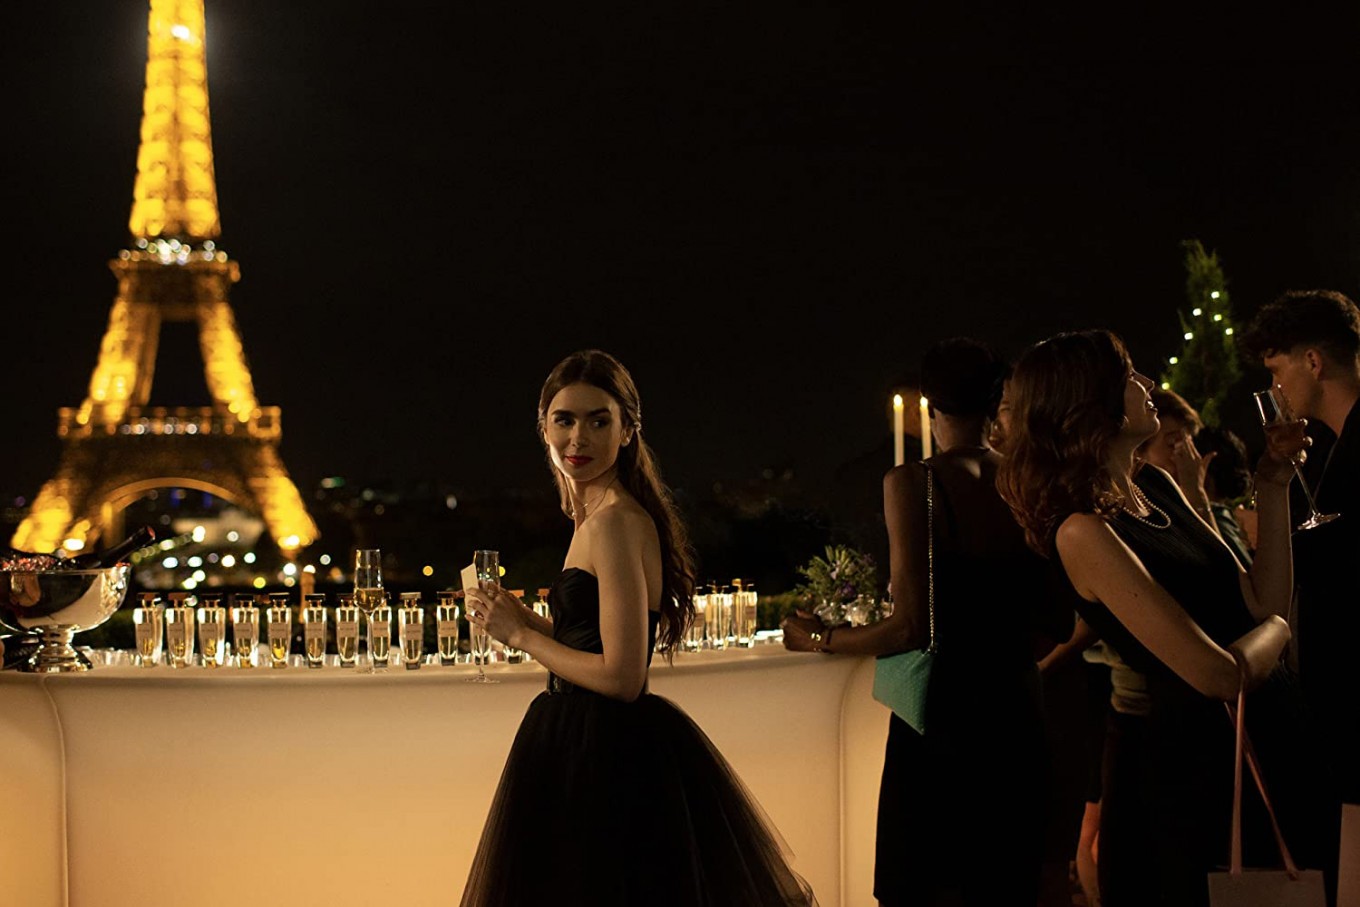 Emily in Paris': How we love making fun of the French - Entertainment - The  Jakarta Post